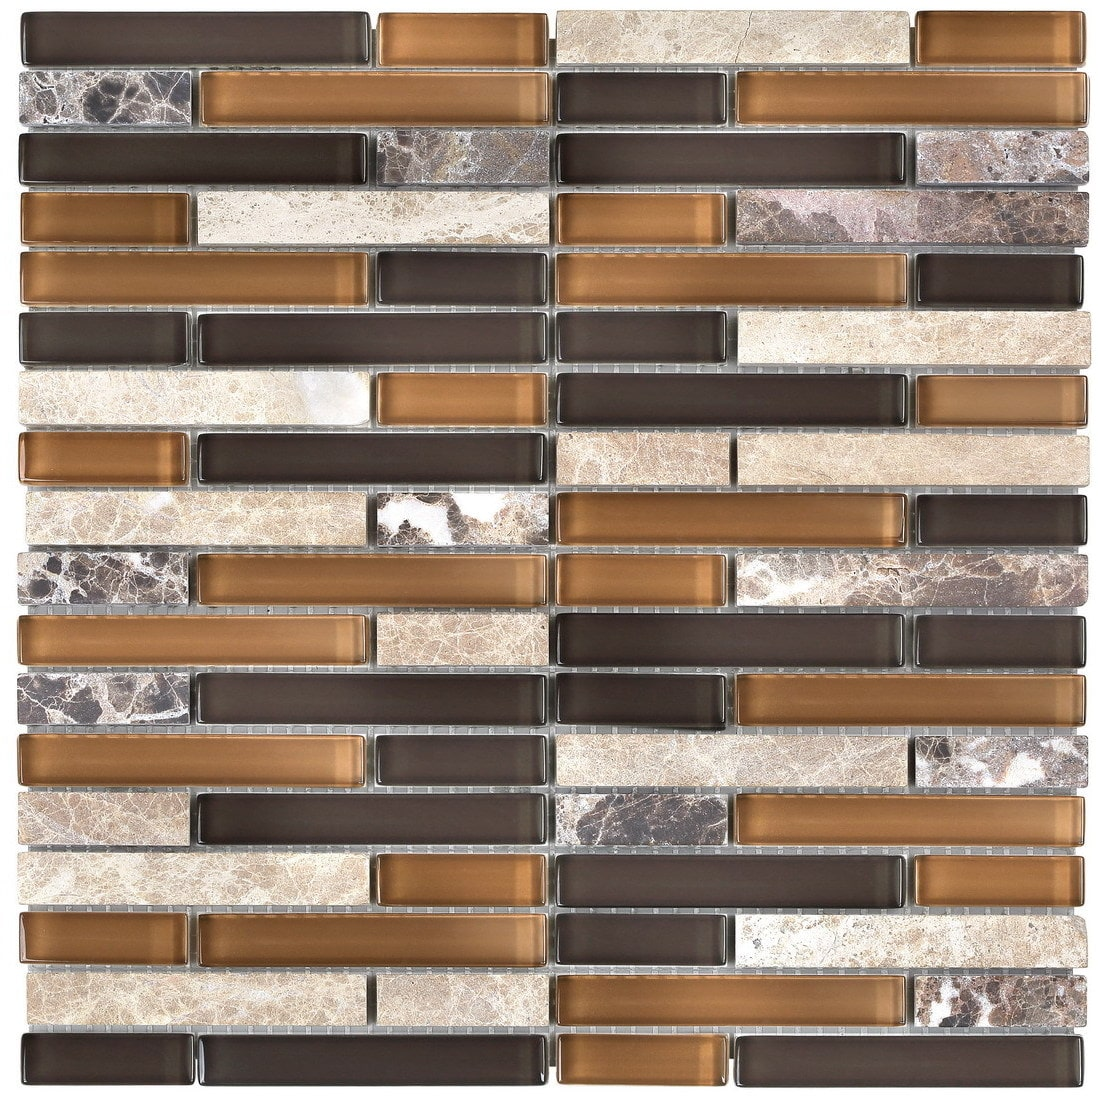 svp Glass Mosaic 12 x 12-inch Tile for Kitchen Backsplash...